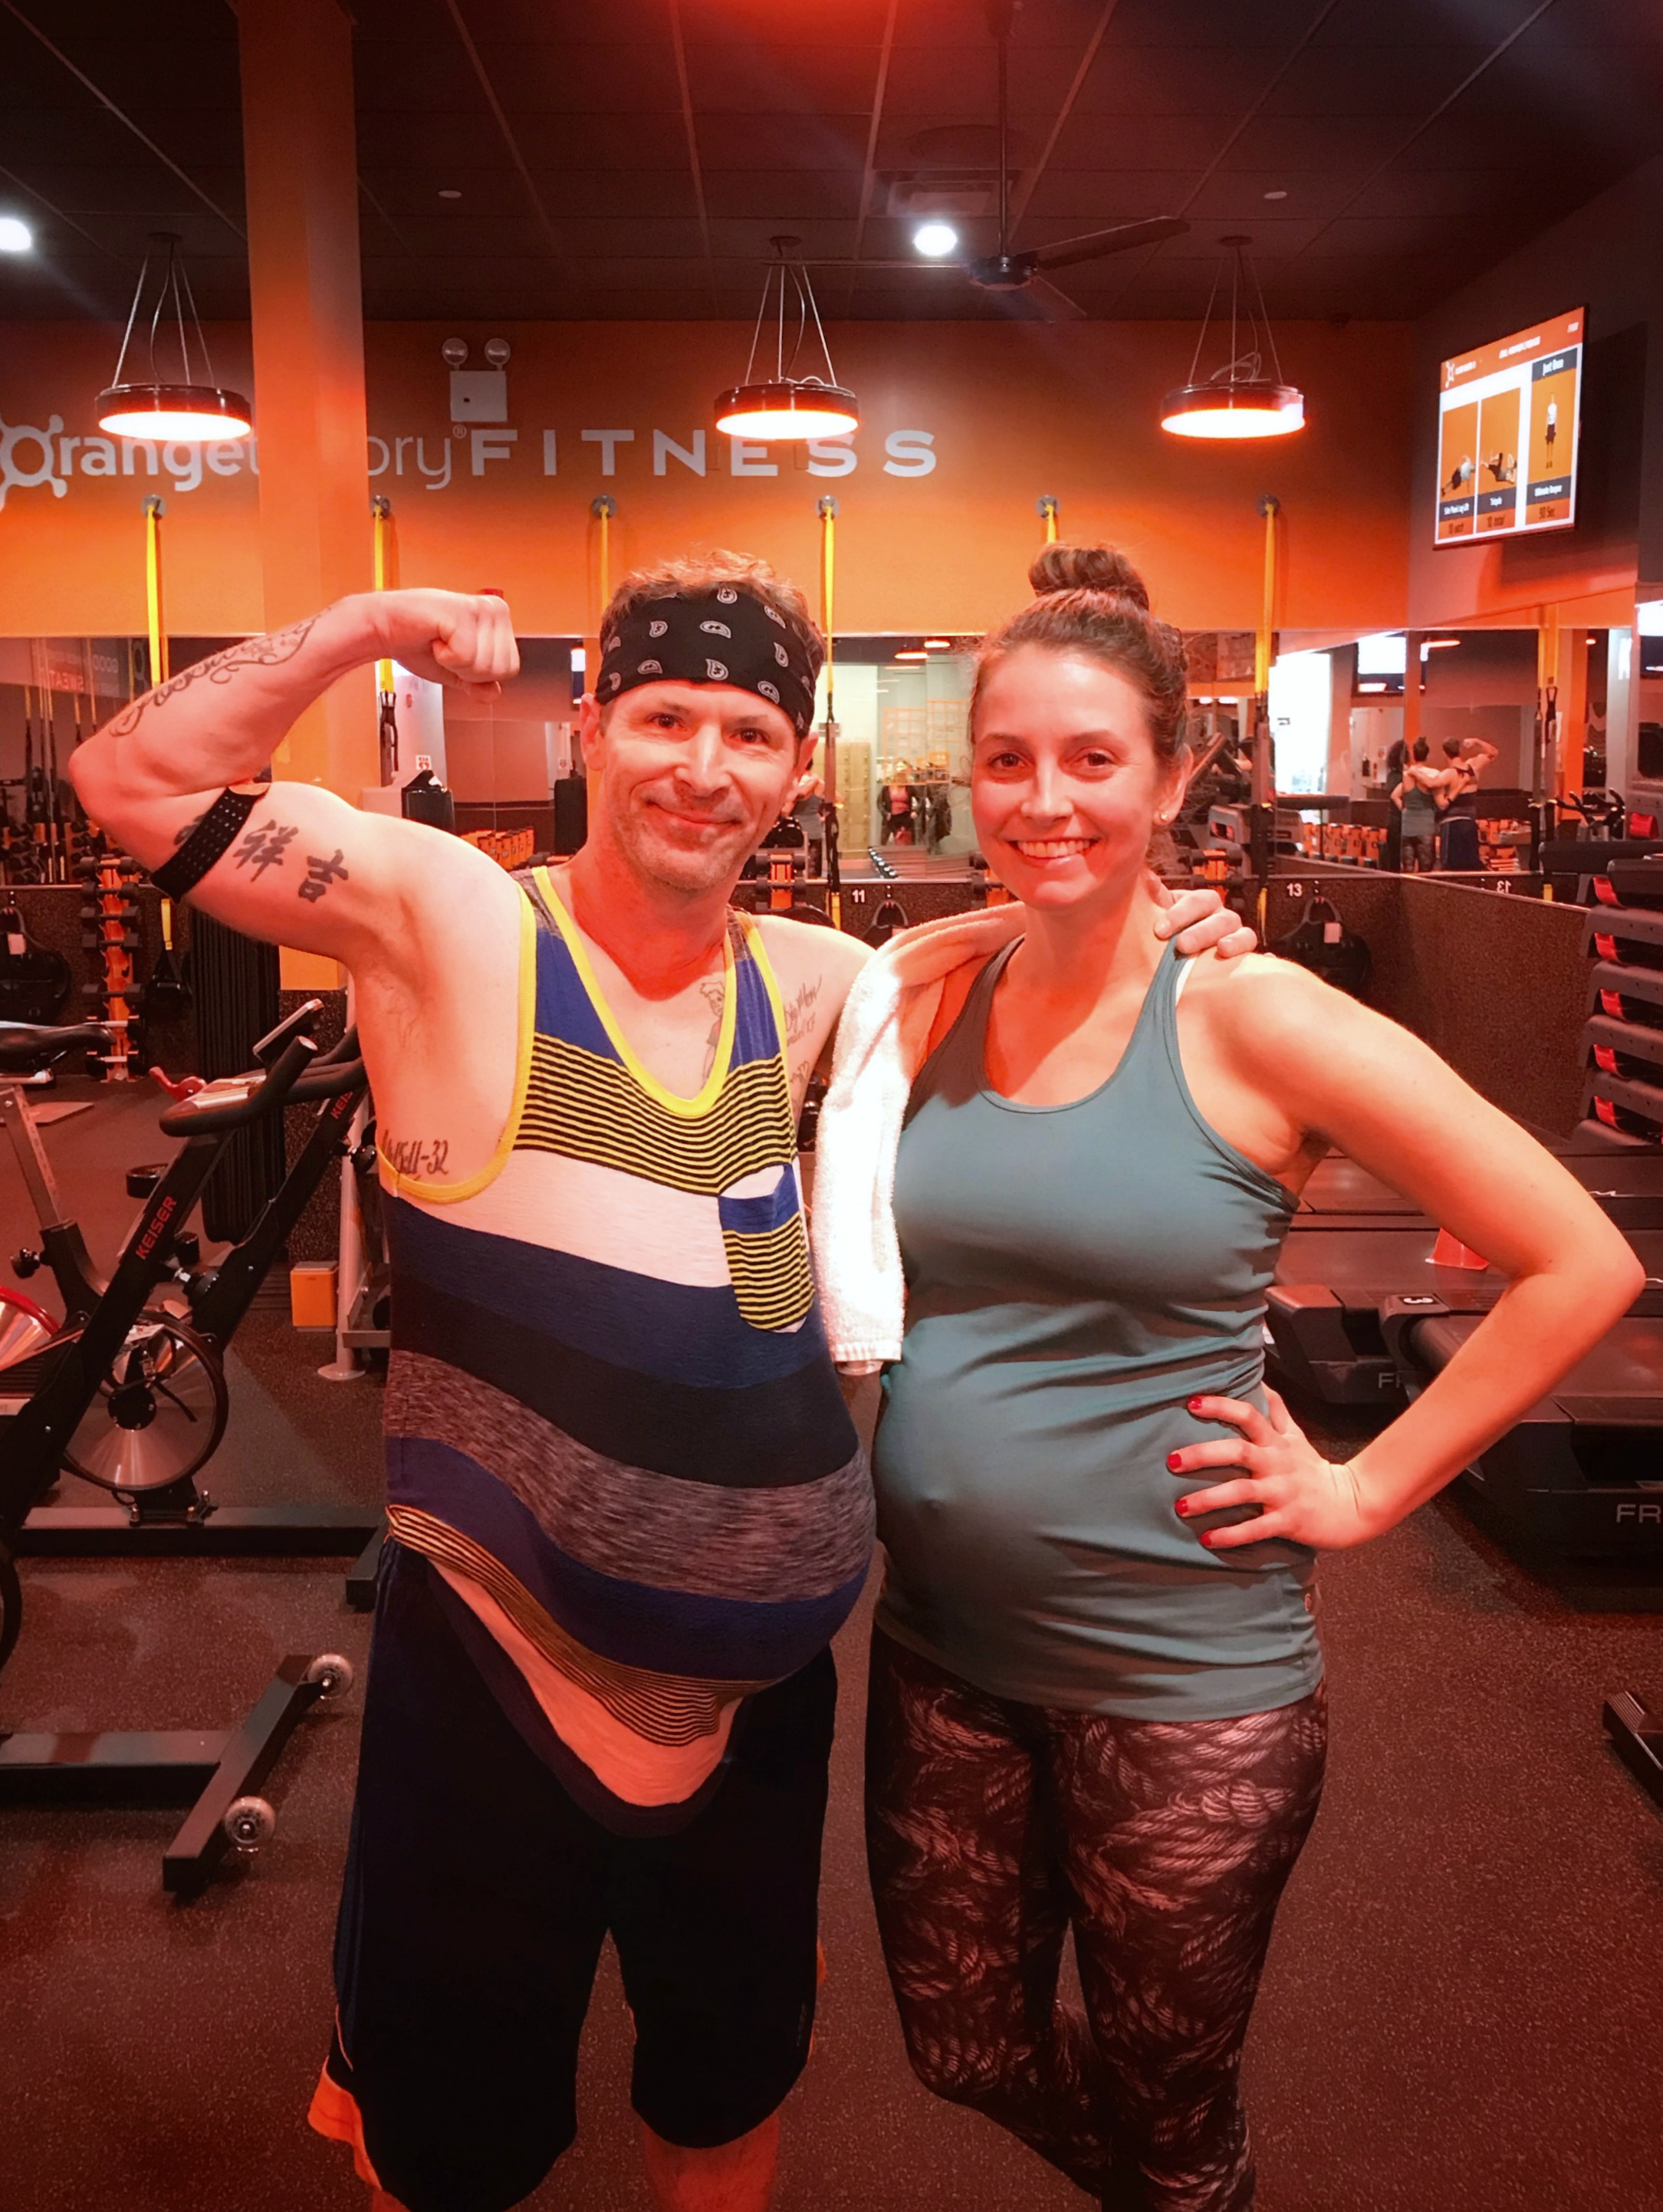 heather and scott working out pregnant